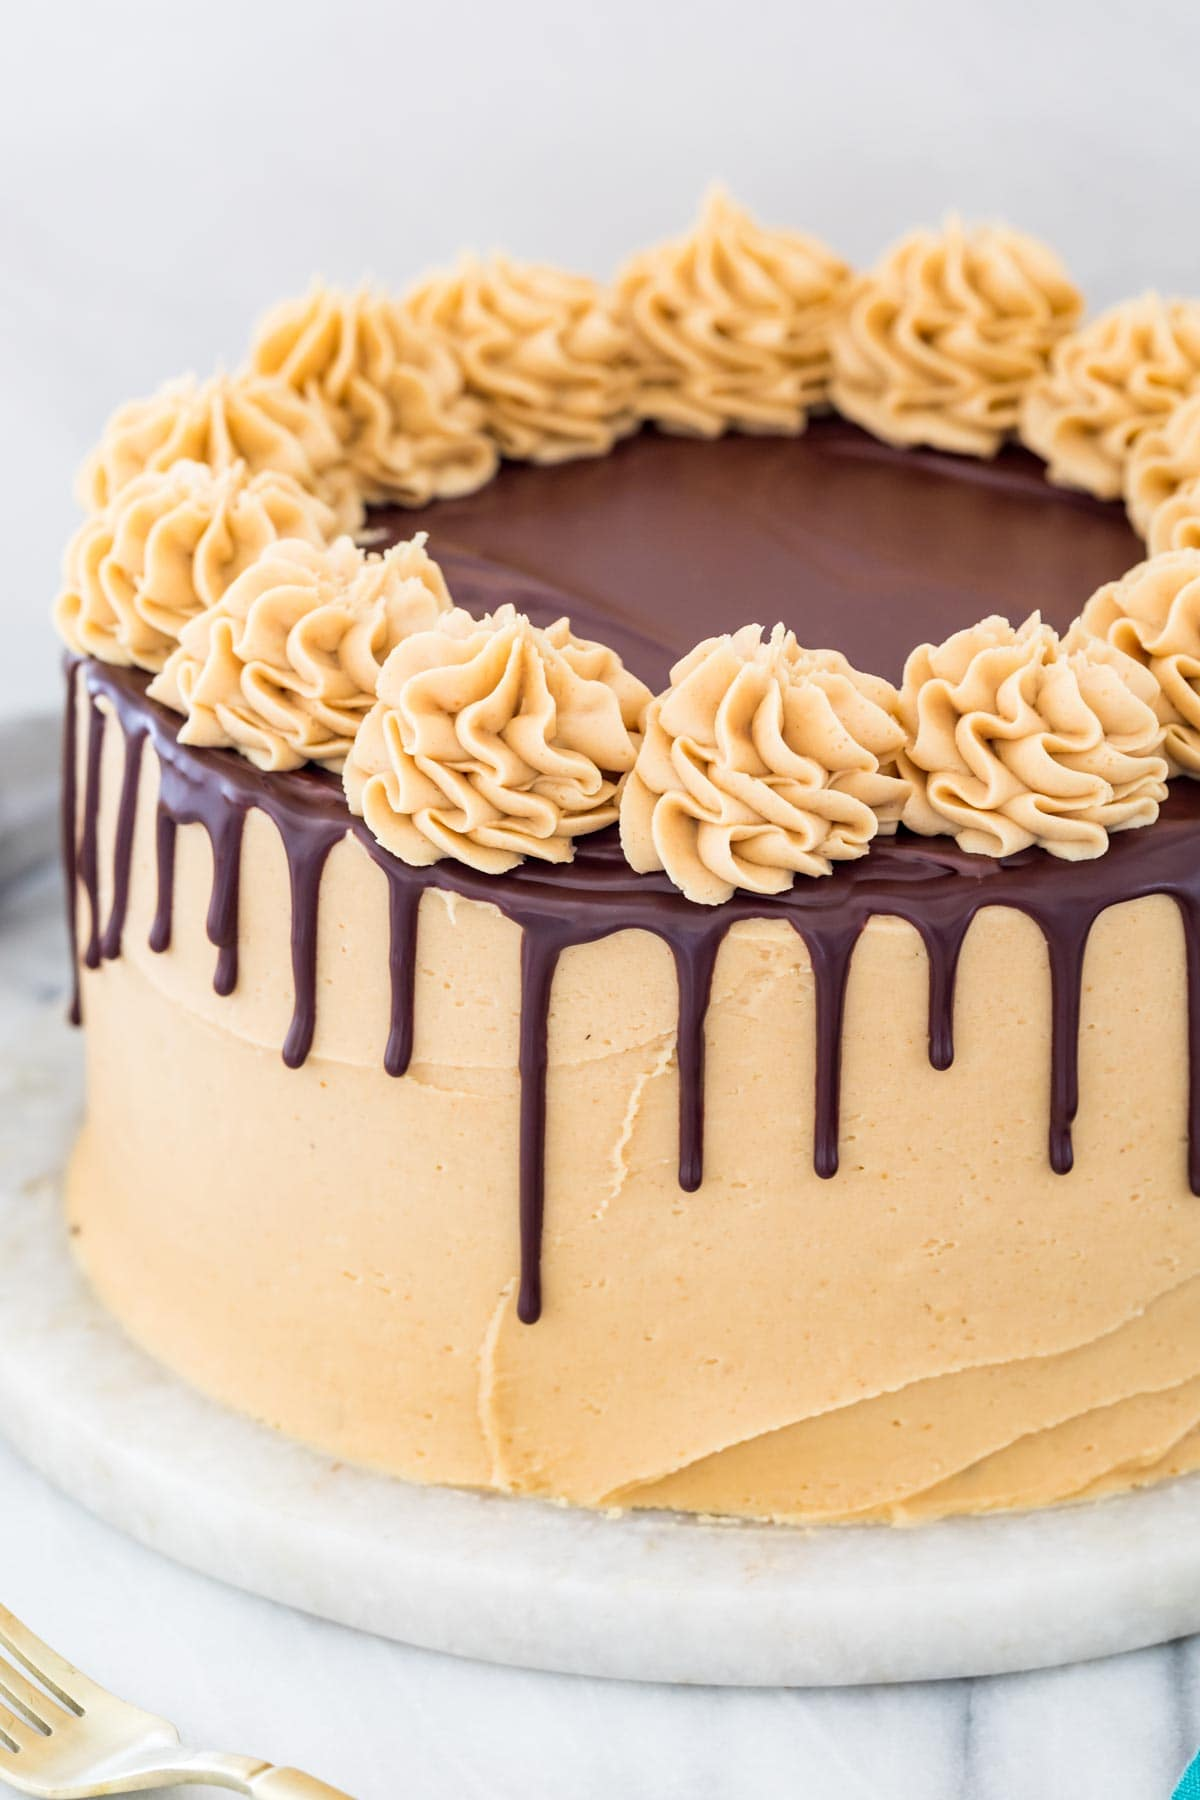 chocolate ganache drip on a peanut butter frosted cake